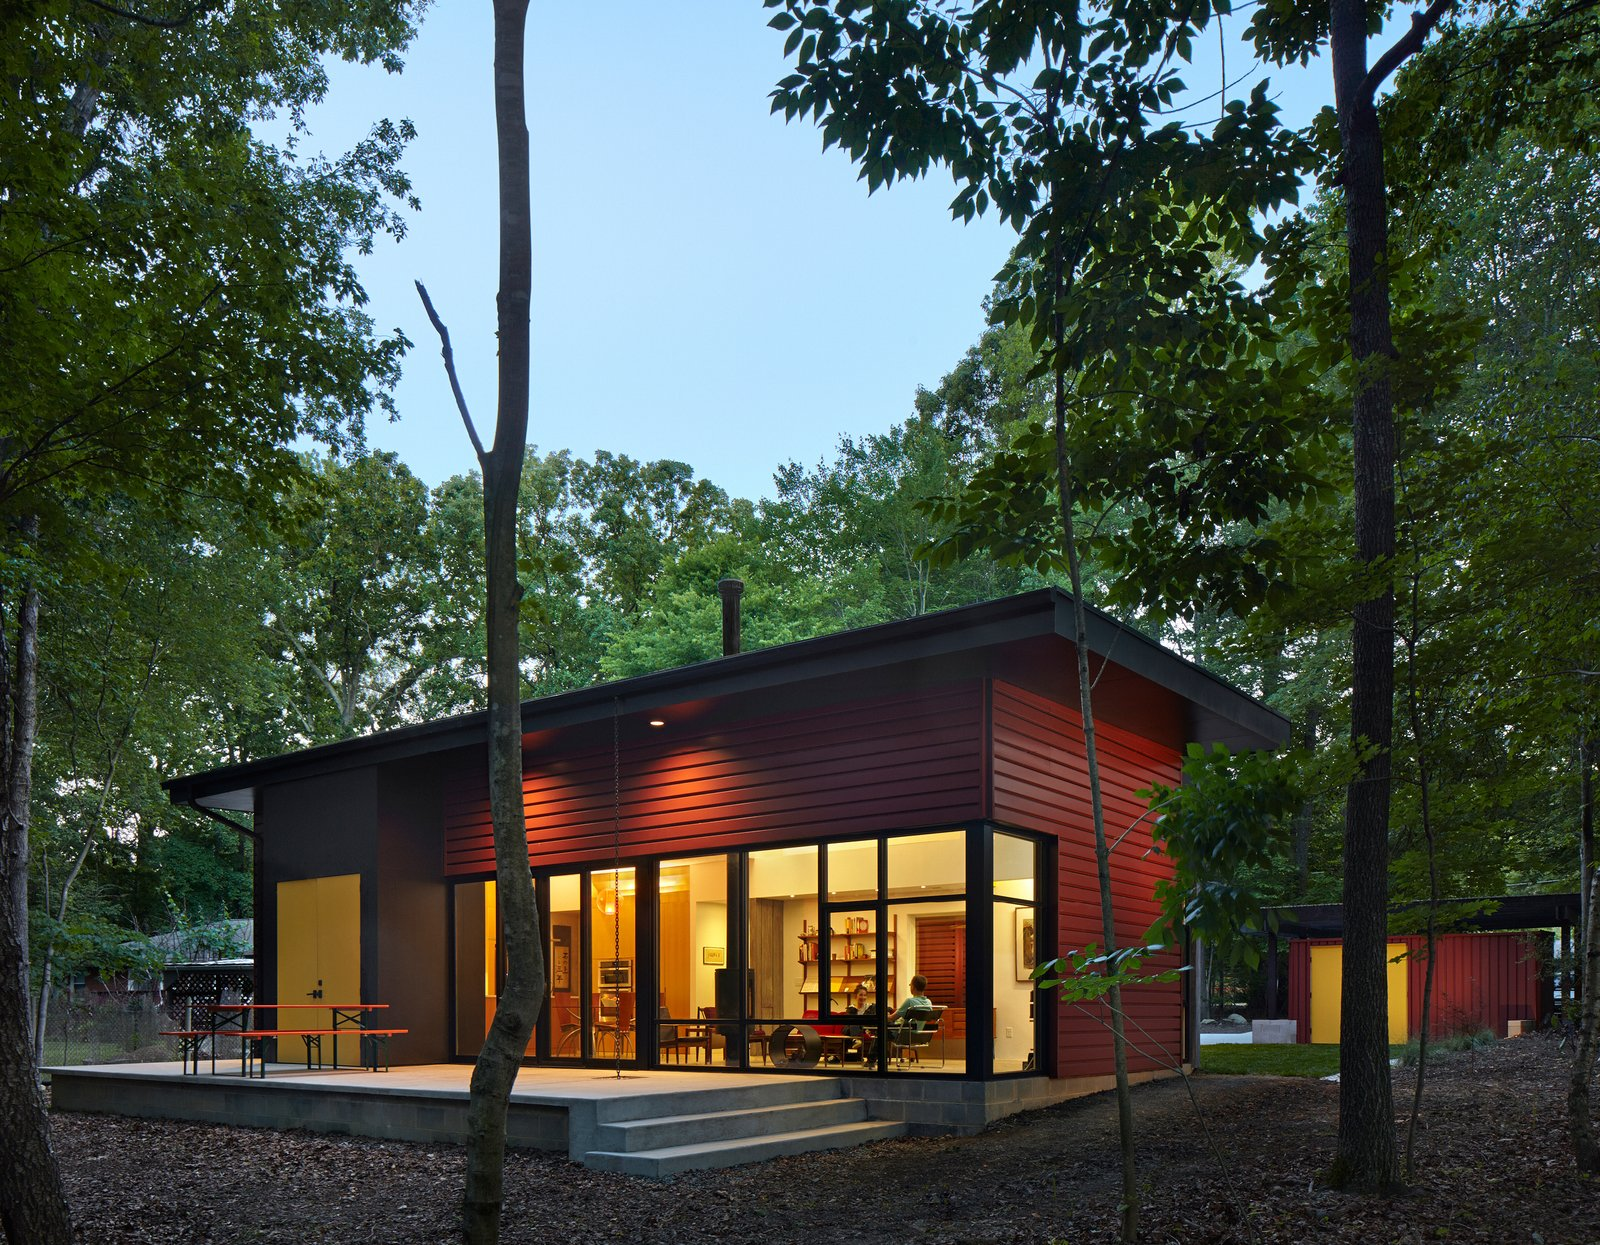 """Exterior, Metal Siding Material, and House Building Type Nestled in a forest, the residence consists of three volumes. The patio, enhanced by a German-made beer garden table, is an extension of the living room floor, creating an indoor-outdoor living space. """"It's one way a small space can be made to feel larger,"""" says architect Jason W. Hart. All of the exterior doors are painted marigold, providing a friendly pop of color.  Search """"staircasetread--metal"""" from This Light-Filled Metallic Home Embraces Its Wooded Site"""